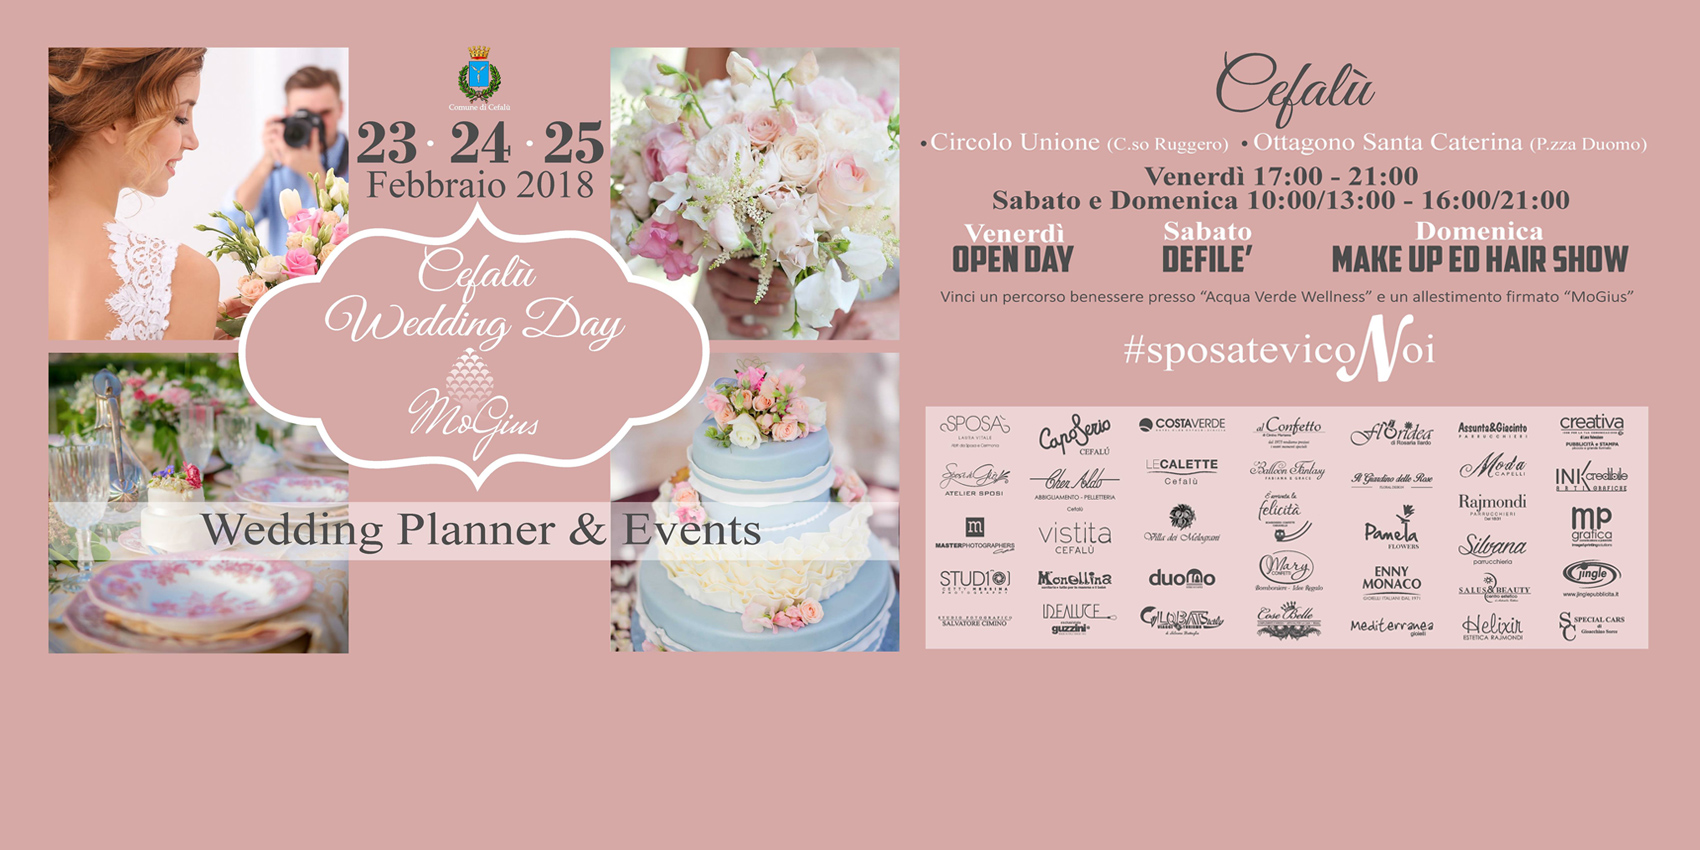 banner_cefalu_wedding_day